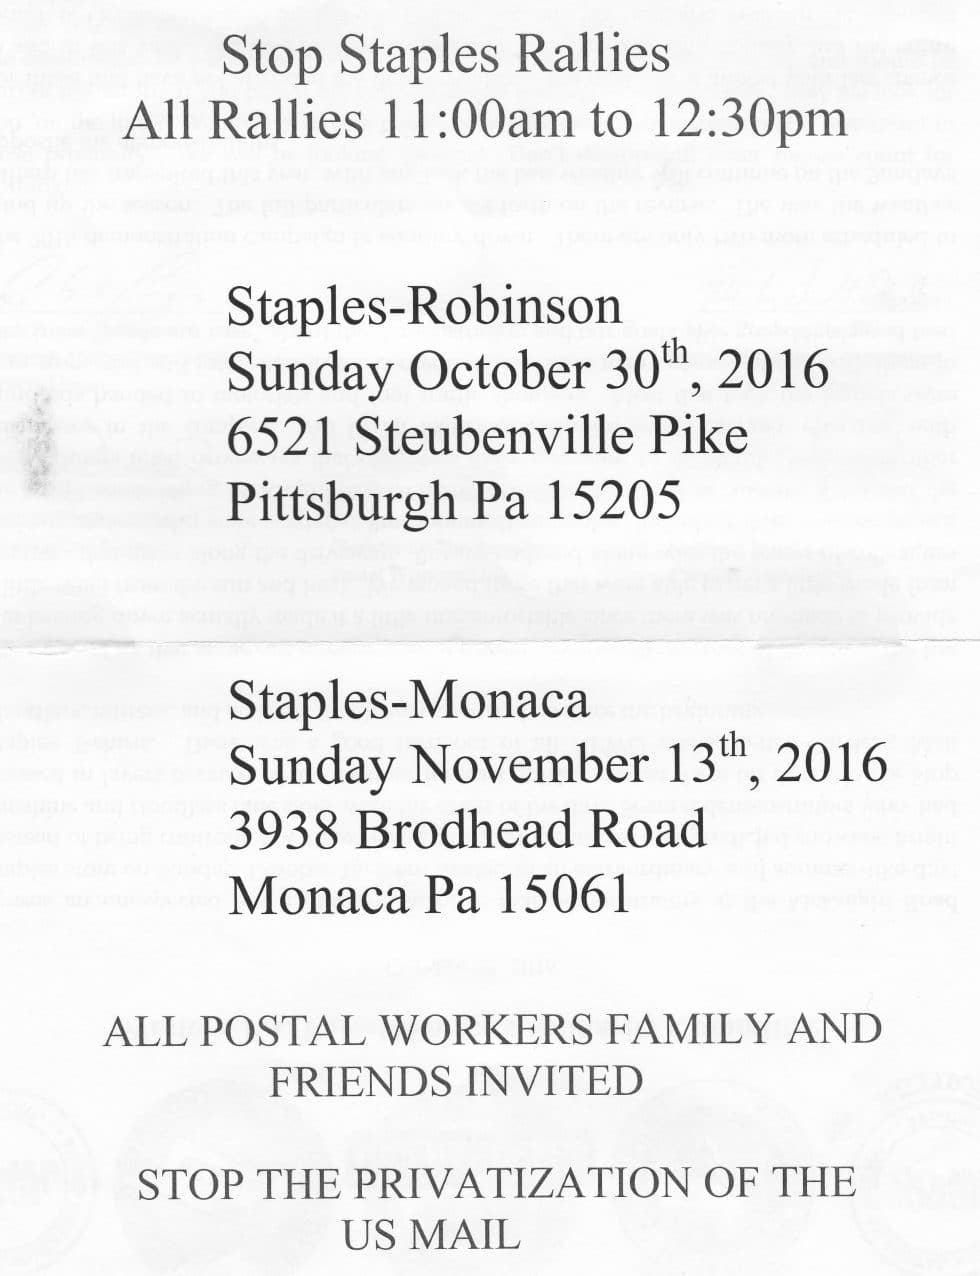 pittsburgh-stop-staples-rallies